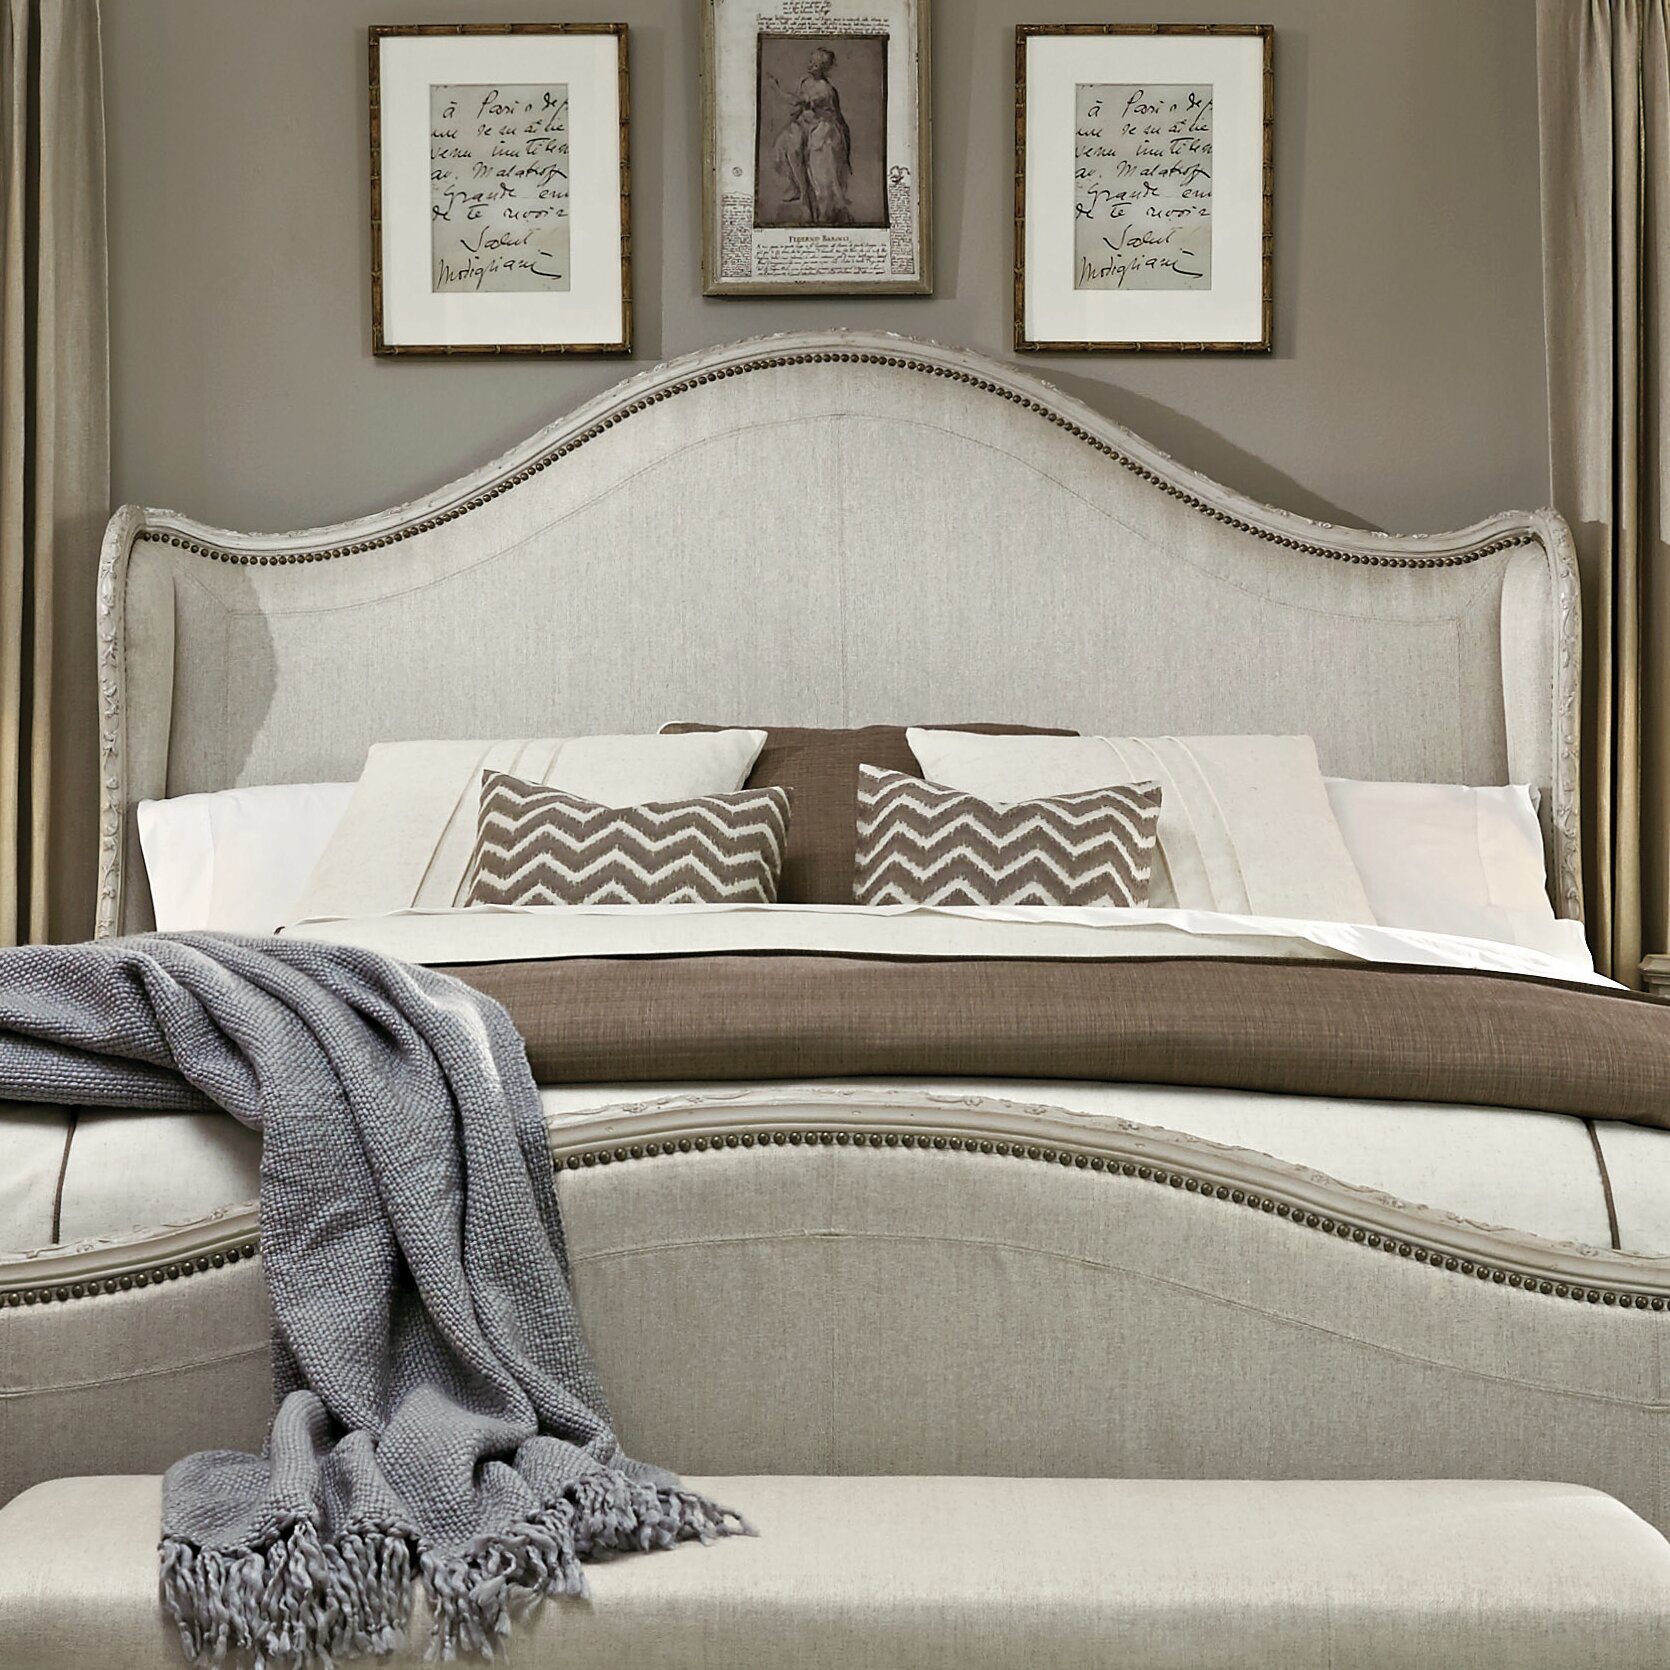 mount headboard fabrics winged inspiration type suffolk fittings what of you get article bed should kbbark wall bedroom